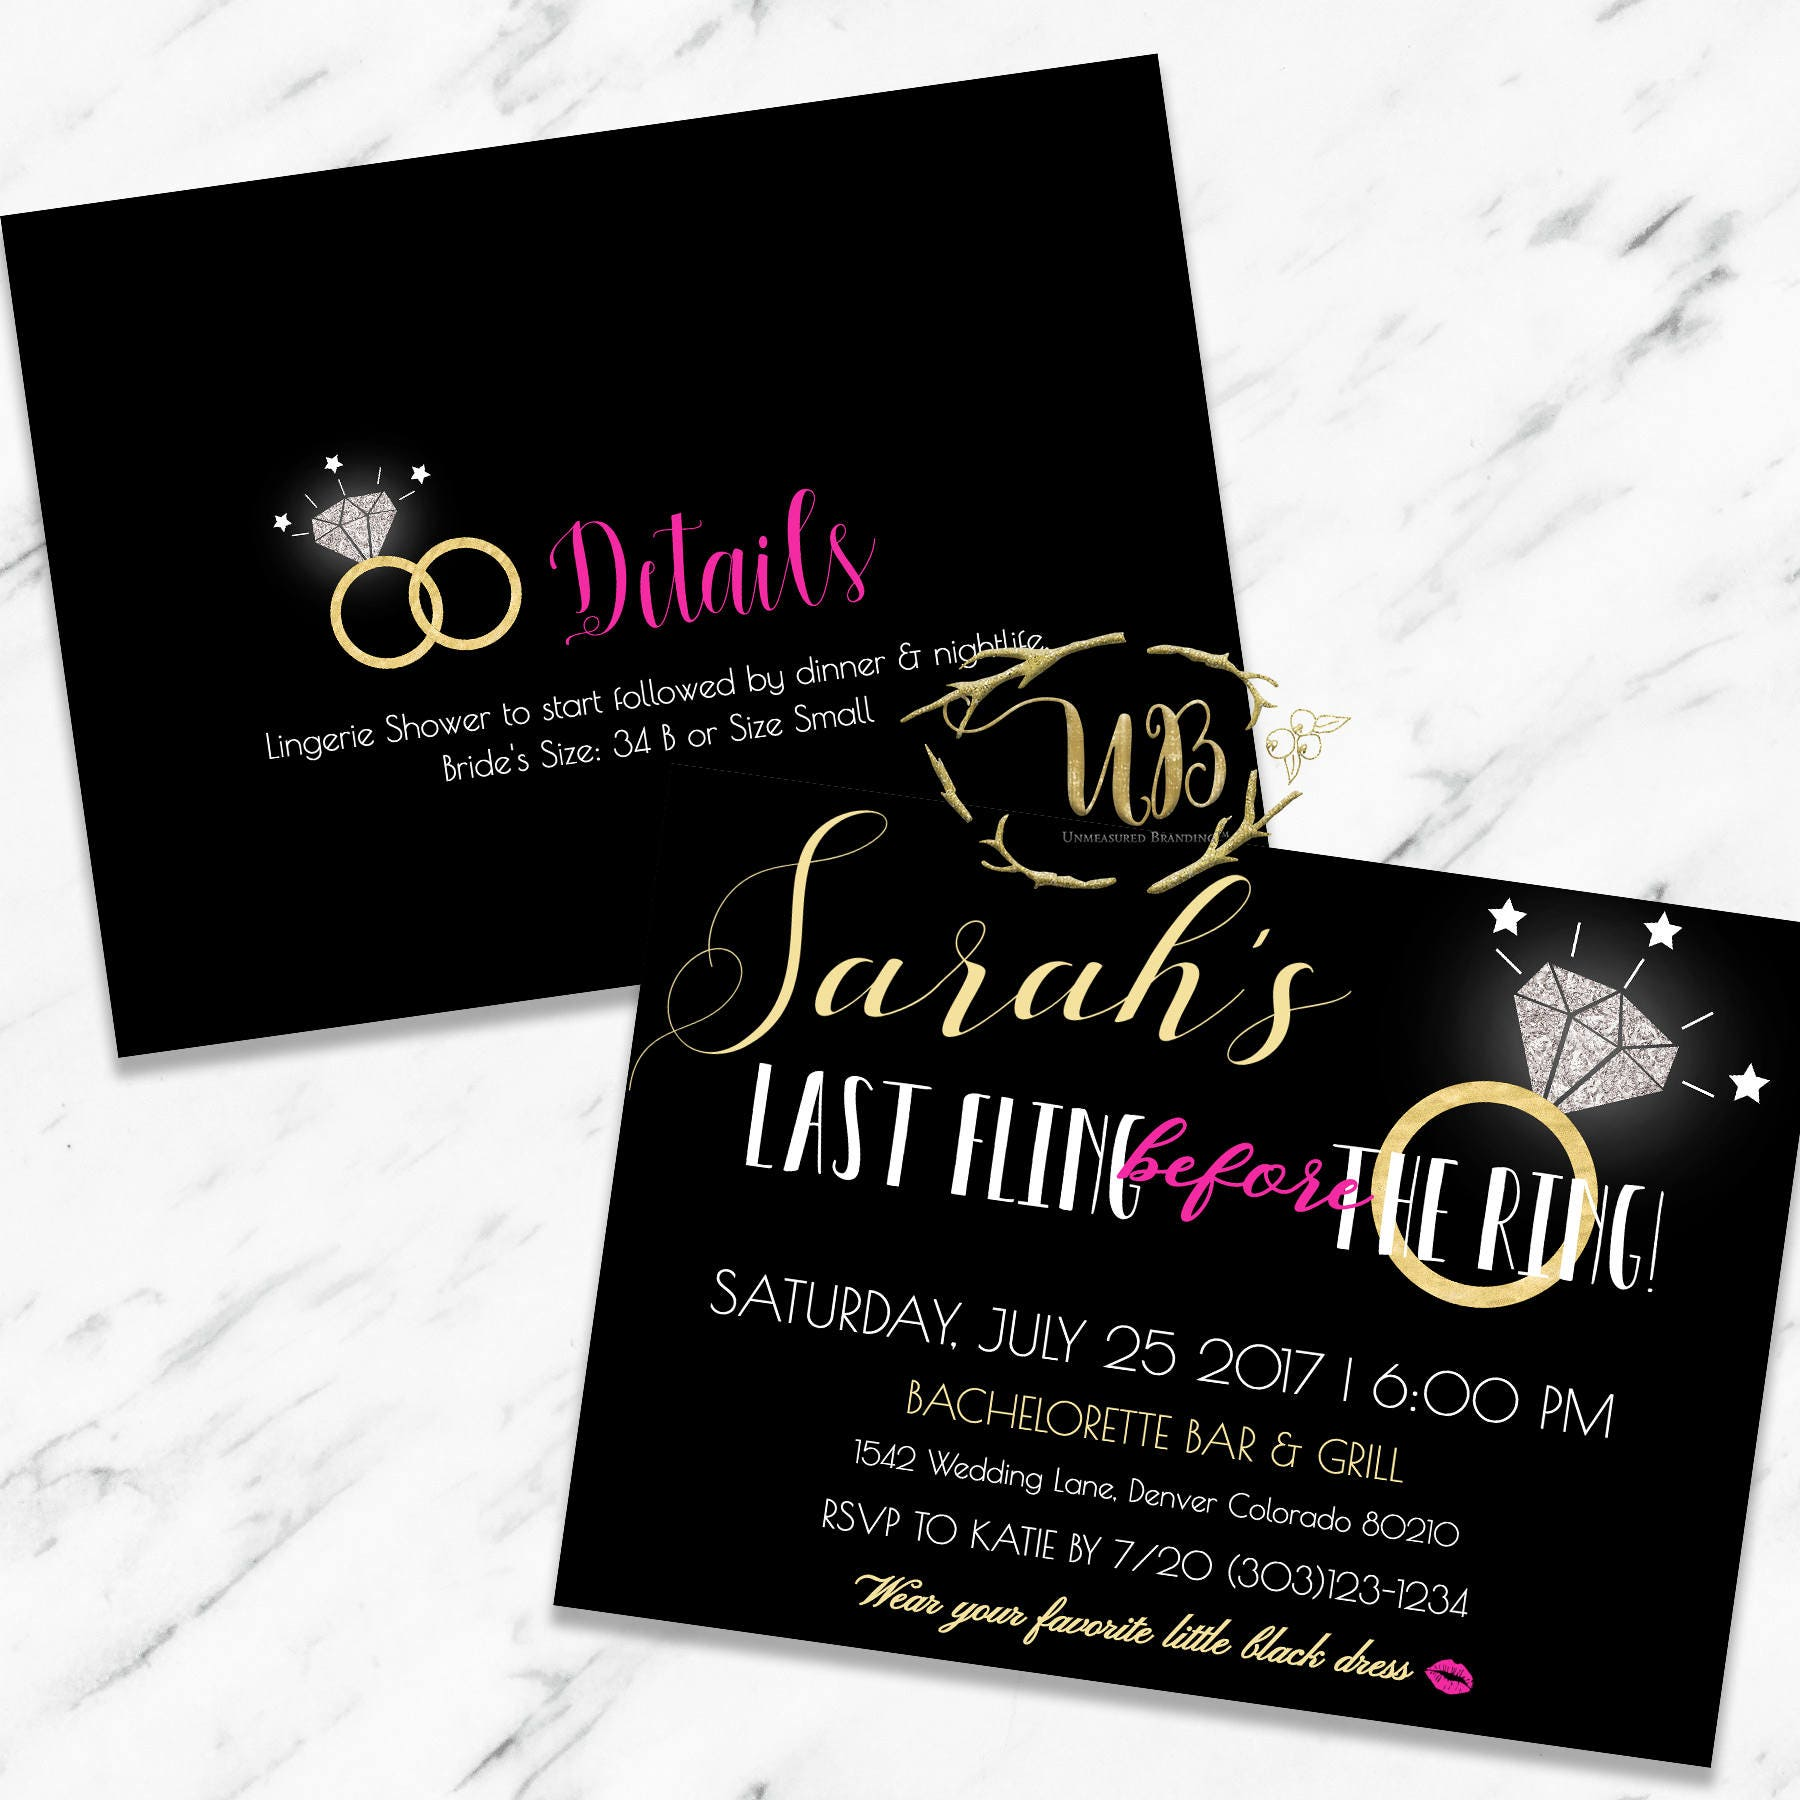 Last Fling Before the Ring | Printable Bachelorette Party Invitation ...